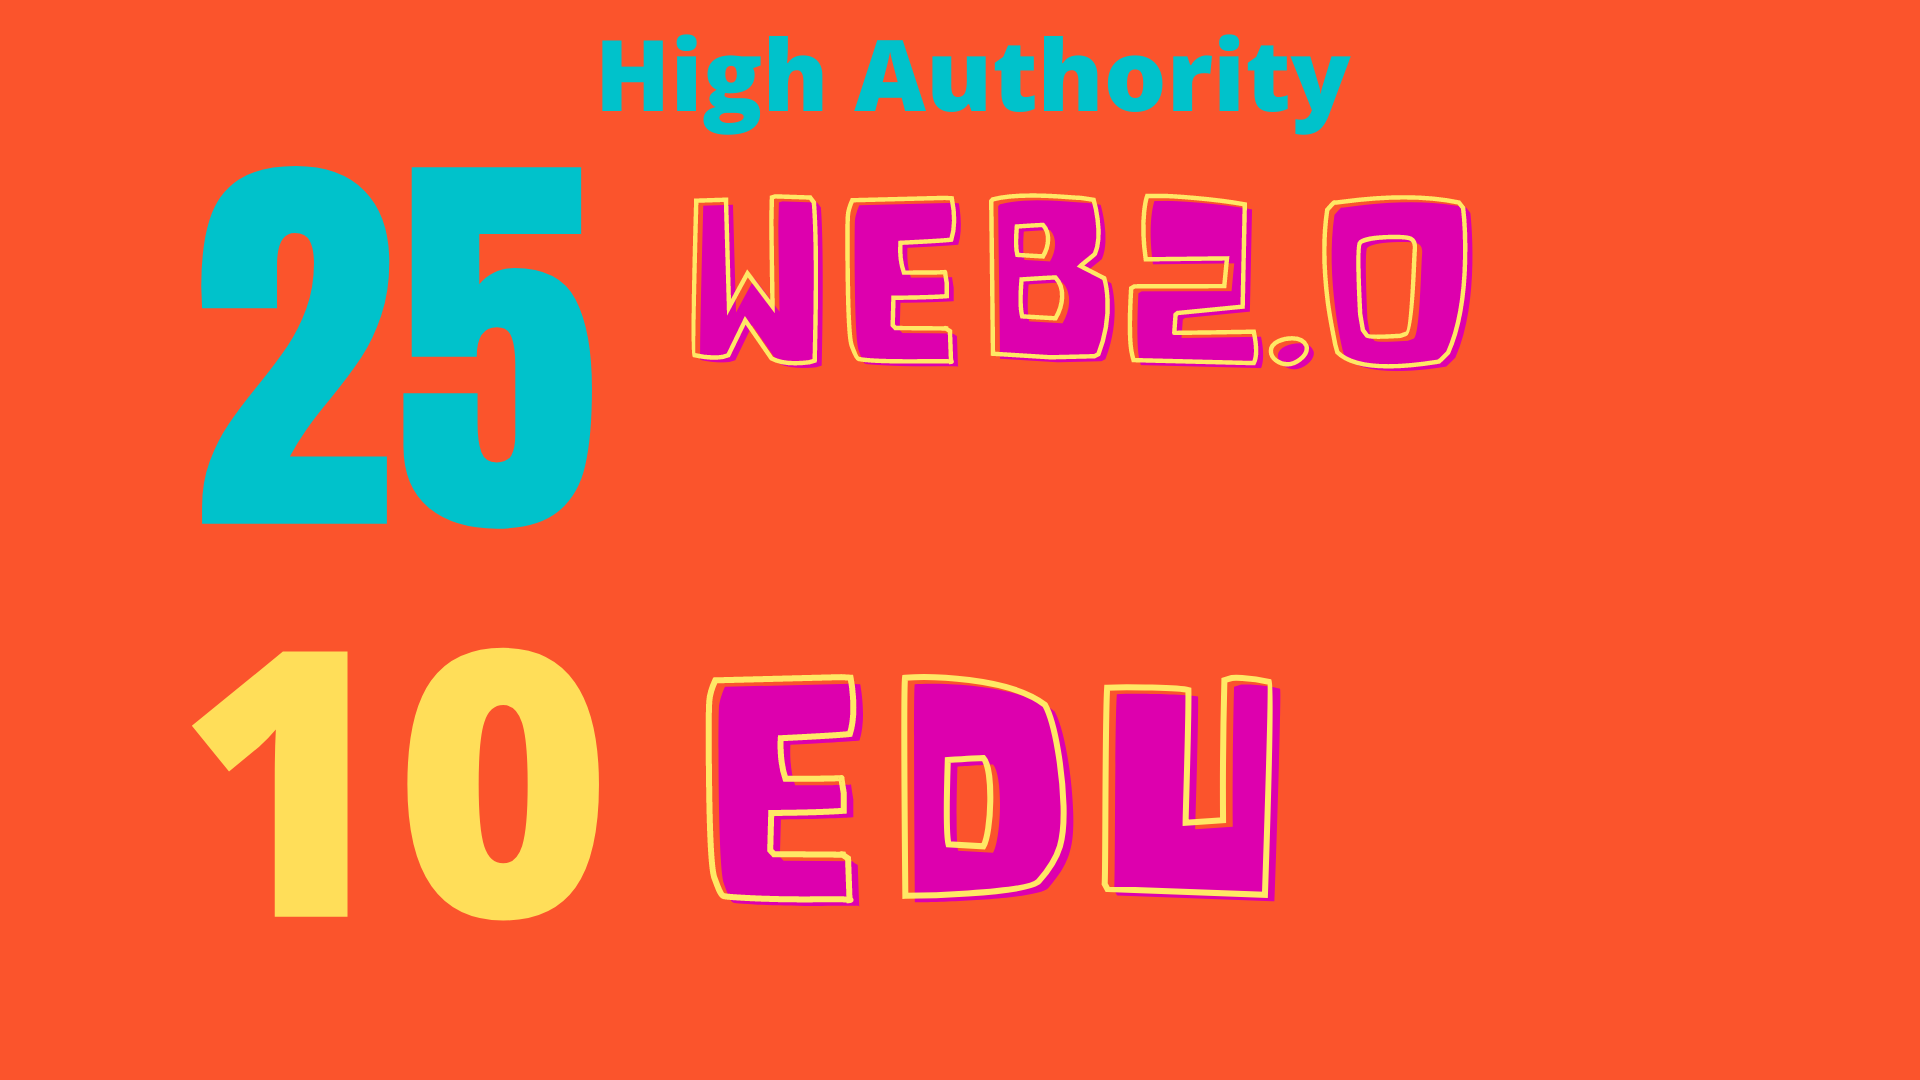 Limited time offer-Authentic High DA90-80+ Backlinks 25 web2.0 and 10 EDU/GOV TOP RANKING SEO